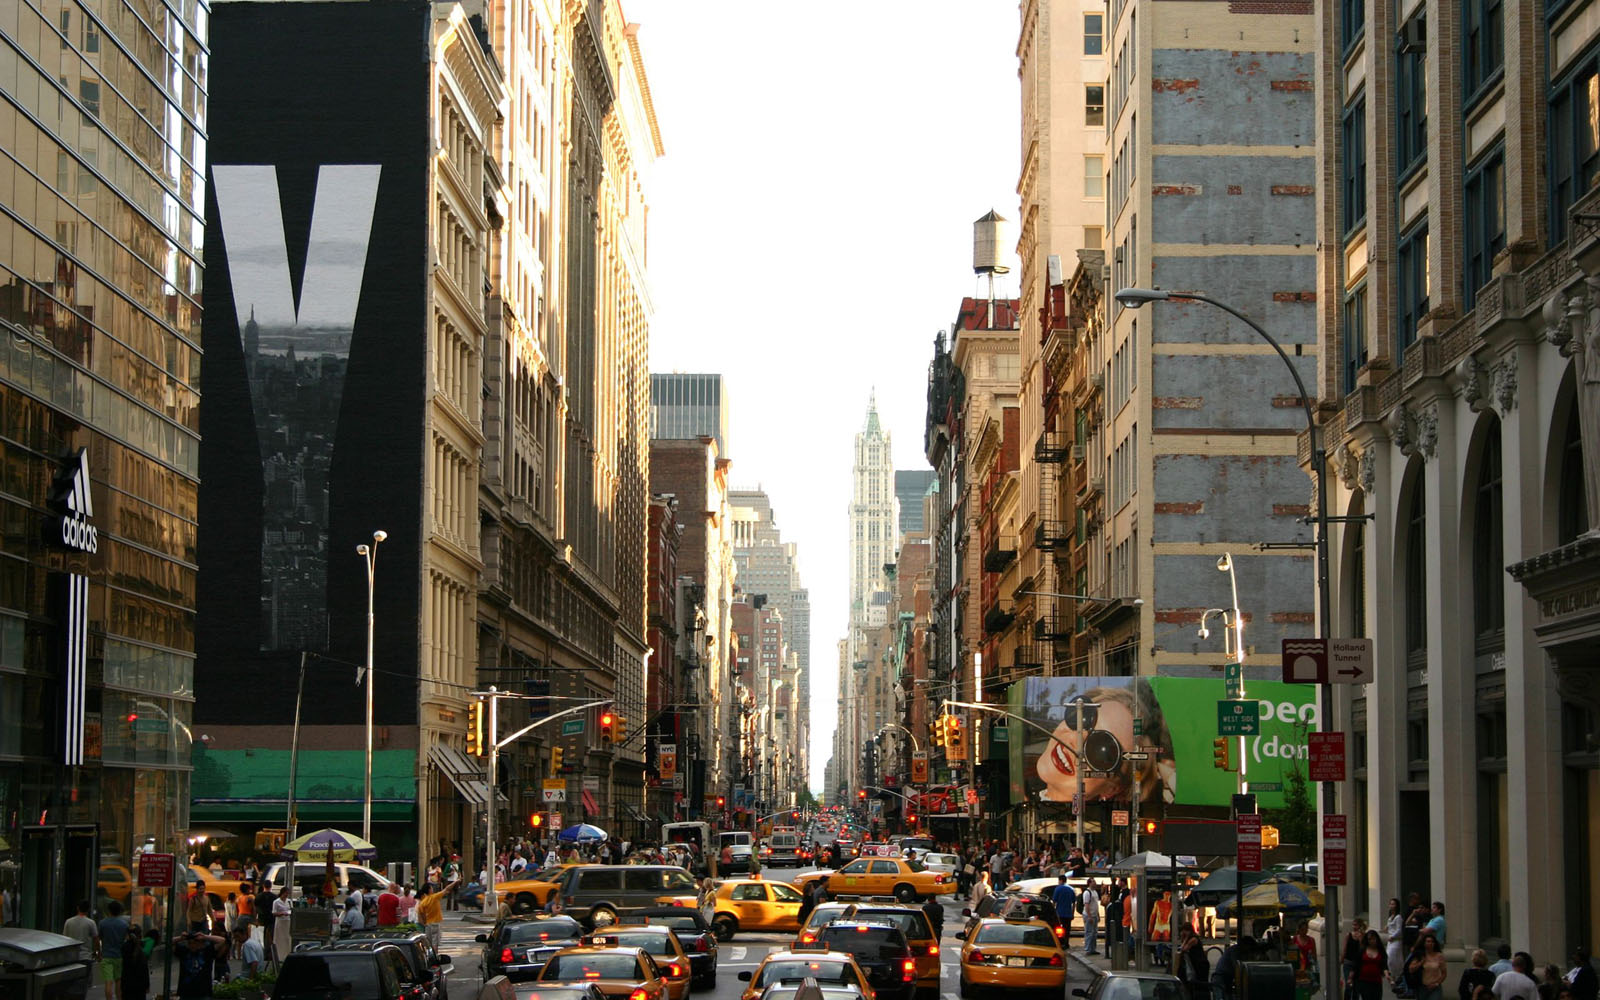 Tag: New York City Wallpapers, Images, Photos and Pictures for free